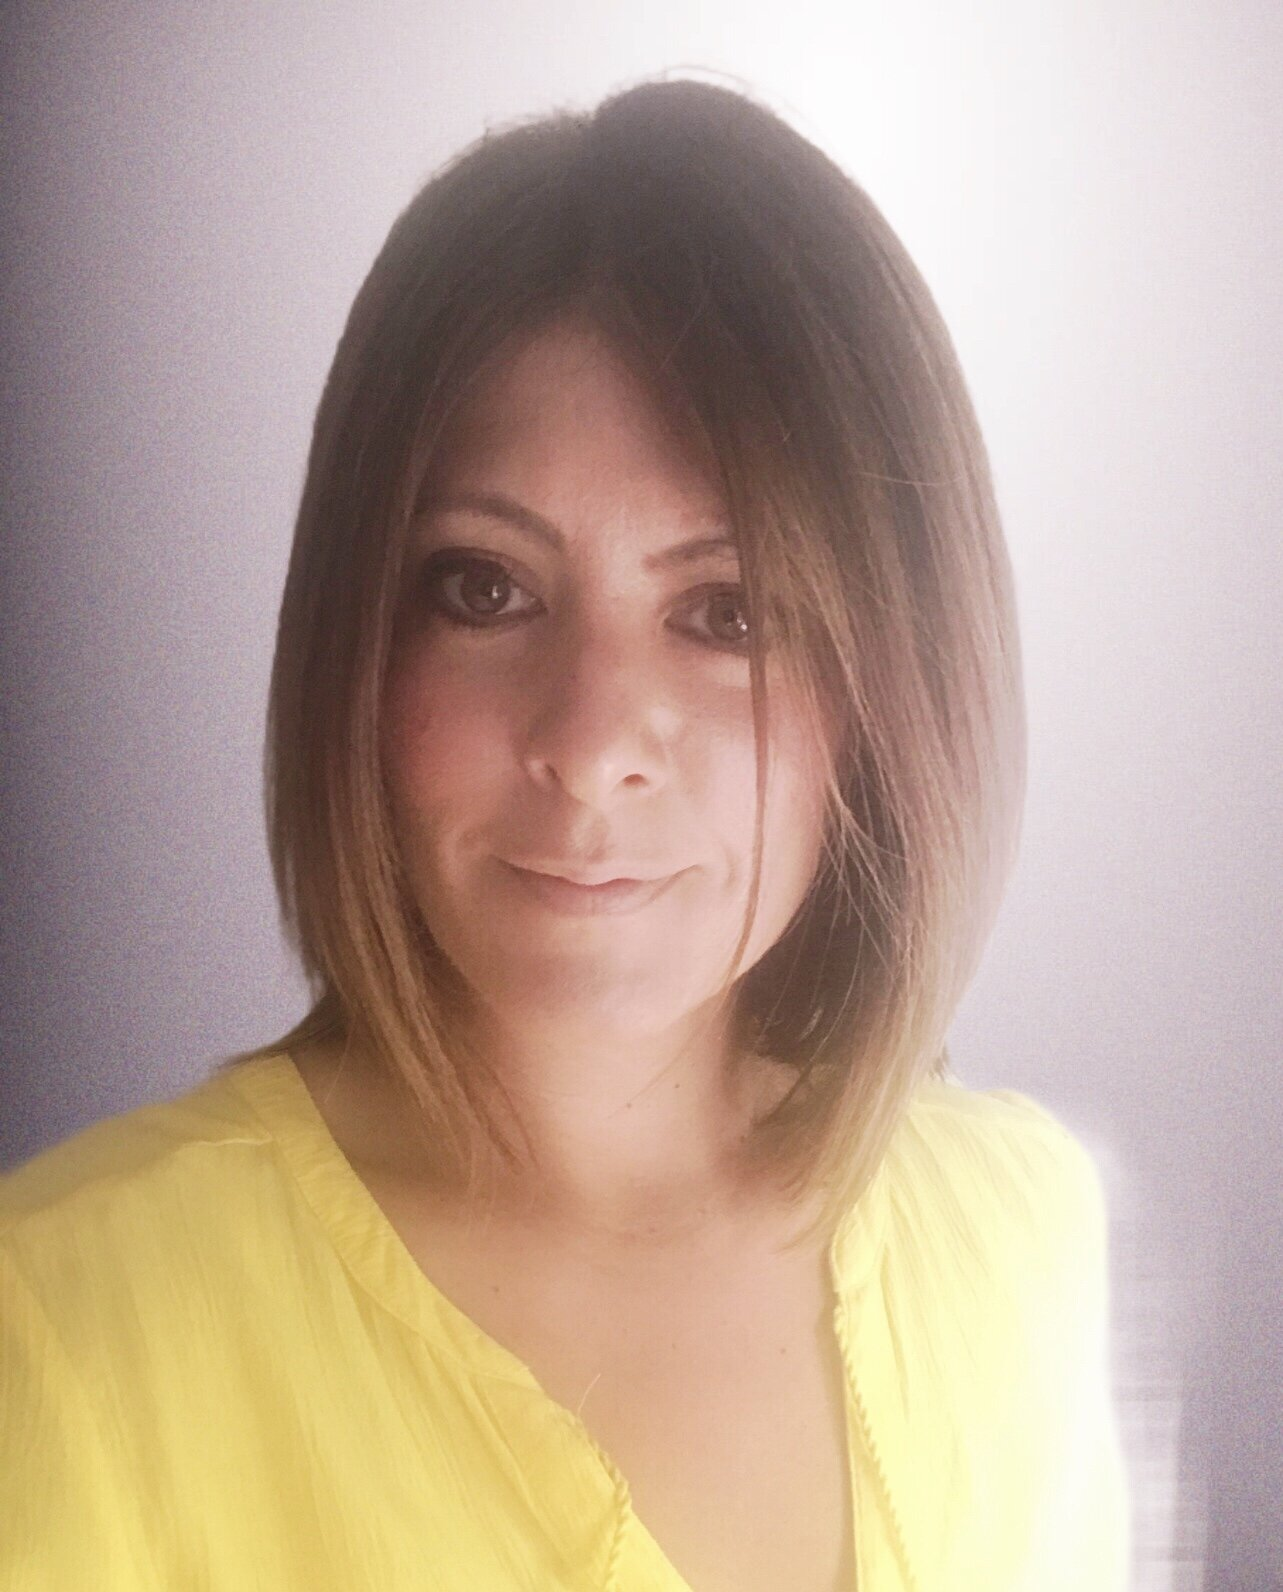 Emma Jefferys is an Accredited Coach and Licensed NLP Practitioner living in Tunbridge Wells.